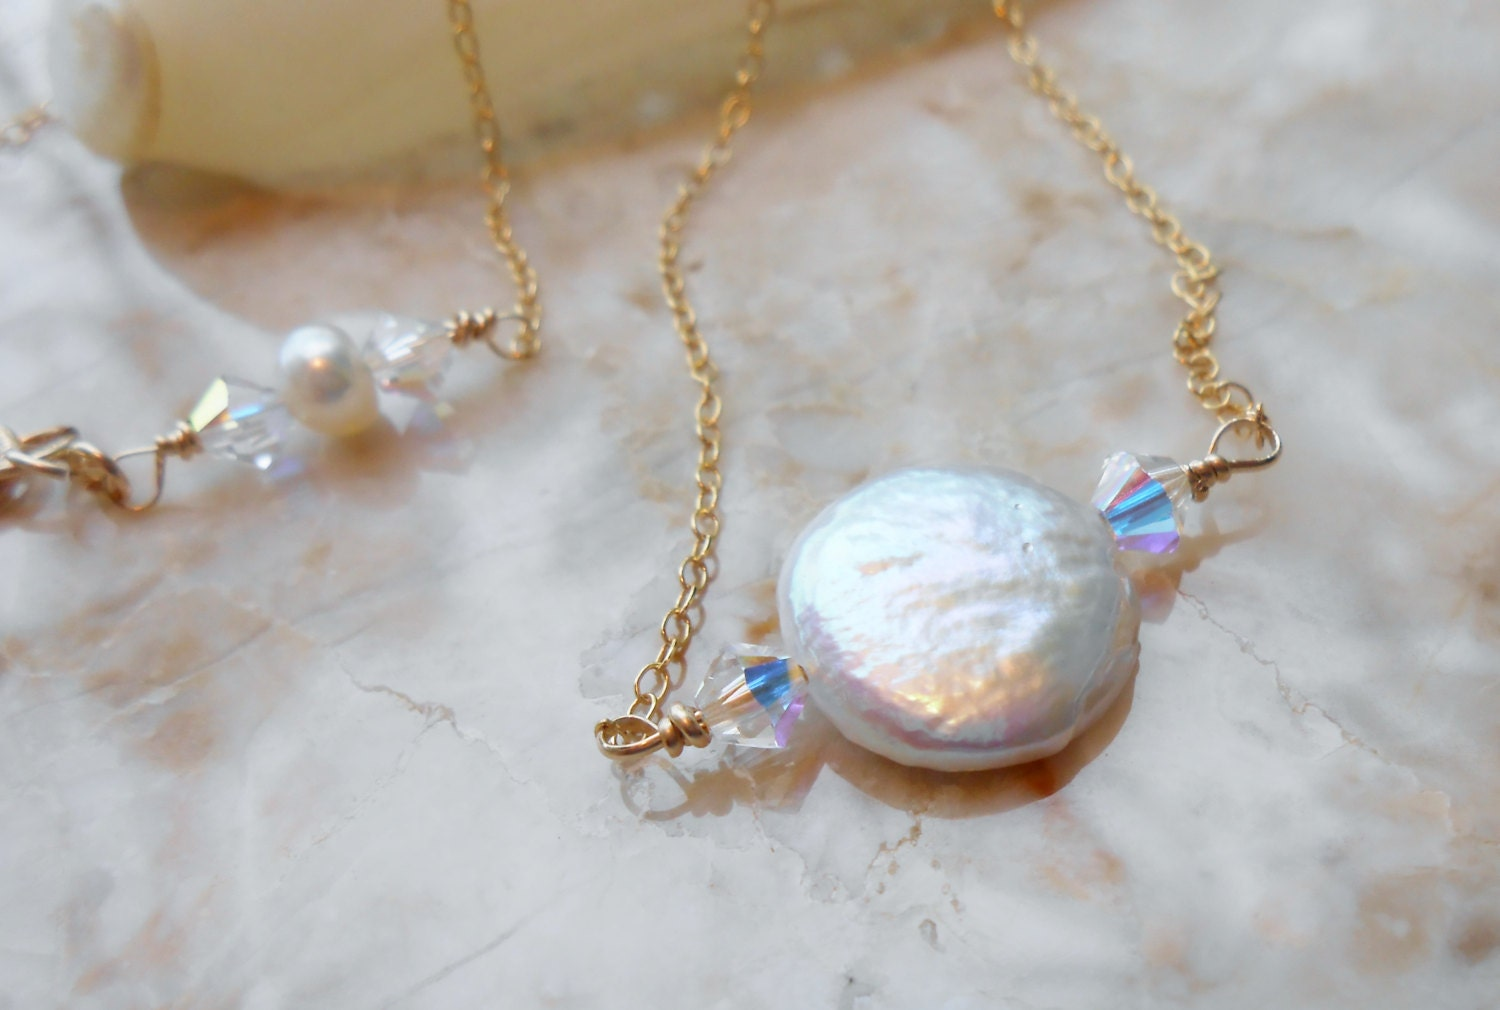 The Wedding Dream/ Bride/ Bridesmaids/ Minimalist White Cultured Freshwater Coin Shaped Pearls and Swarovski 14kt Gold Filled Necklace - IsamarML